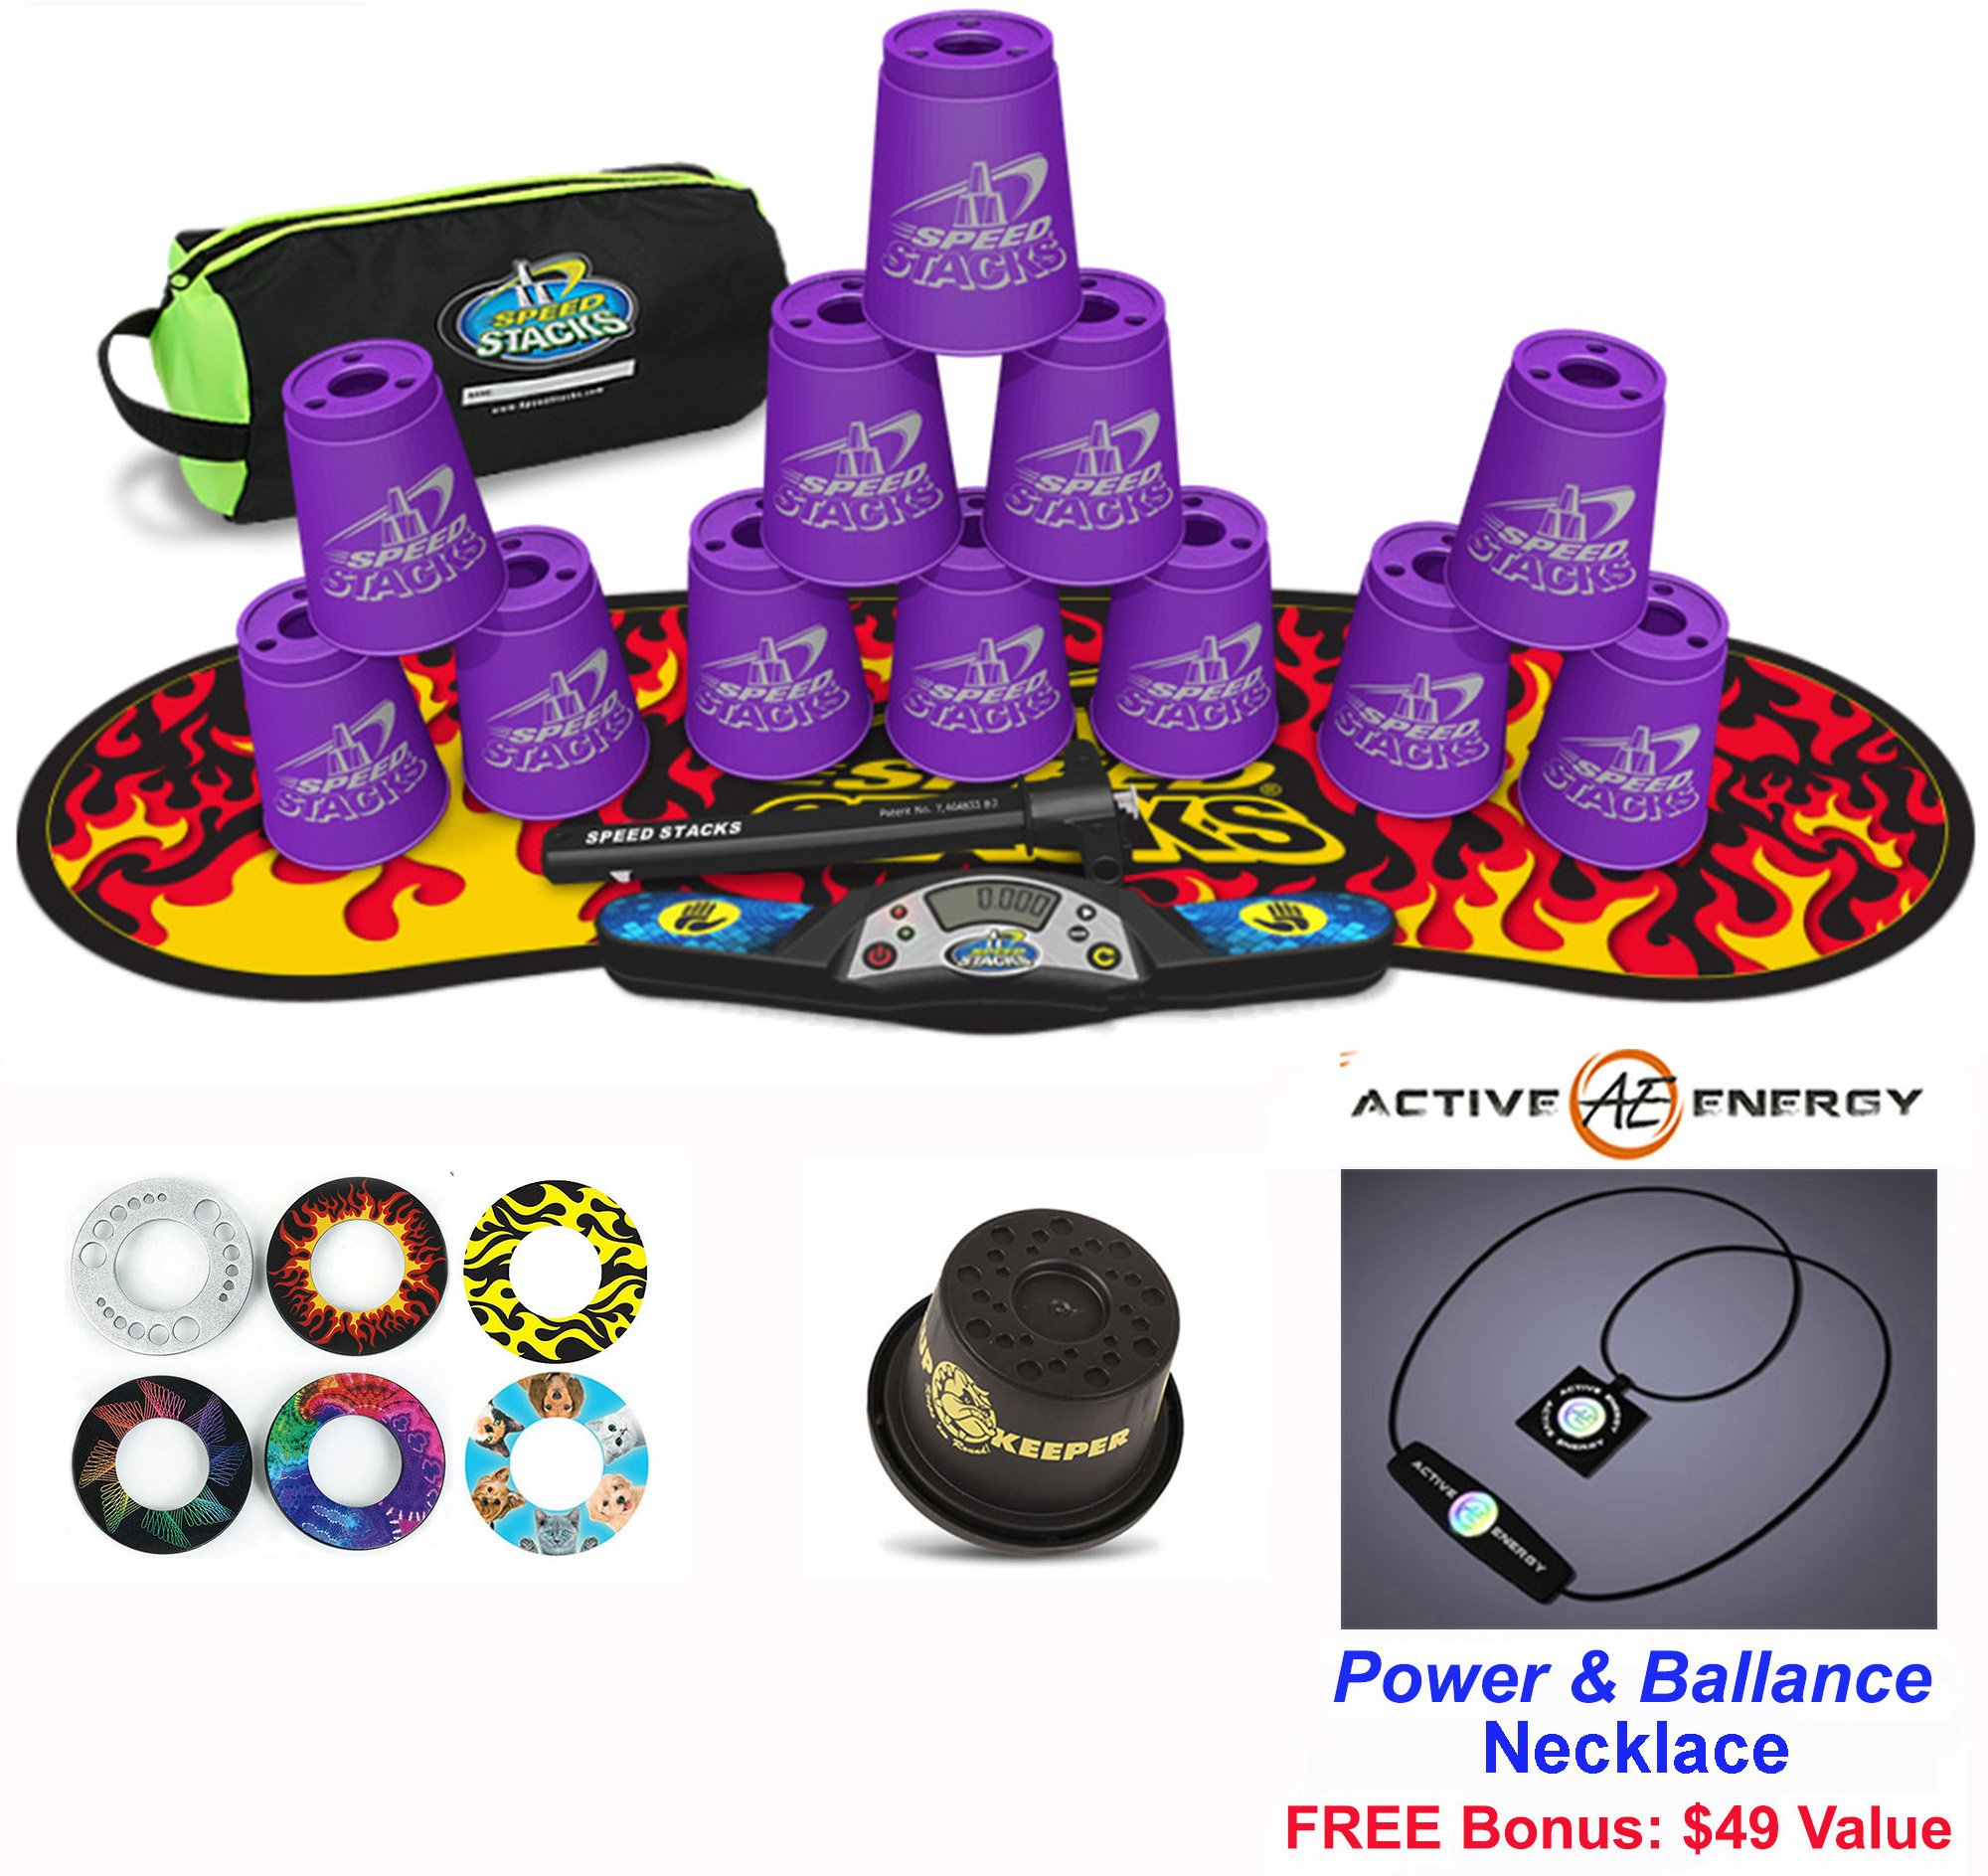 Speed Stacks Combo Set 'The Works'': 12 PURPLE 4'' Cups, Black Flame Gen 3 Mat, G4 Pro Timer, Cup Keeper, Stem, Gear Bag + Active Energy Necklace